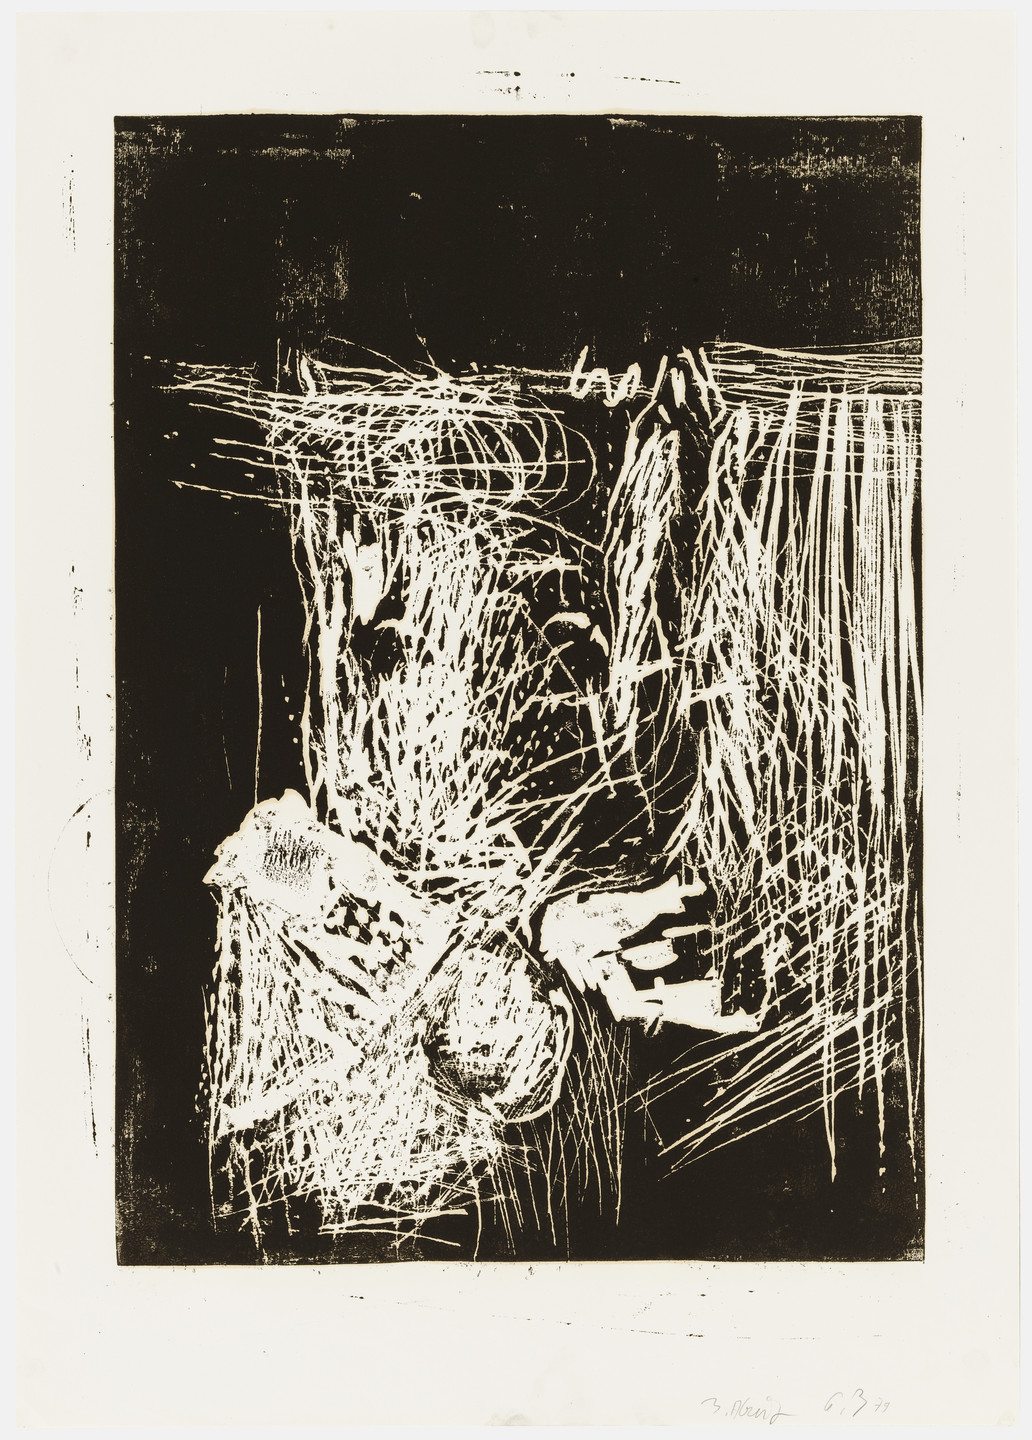 Georg Baselitz. Woman at the Window (Frau am Fenster), state III. 1979